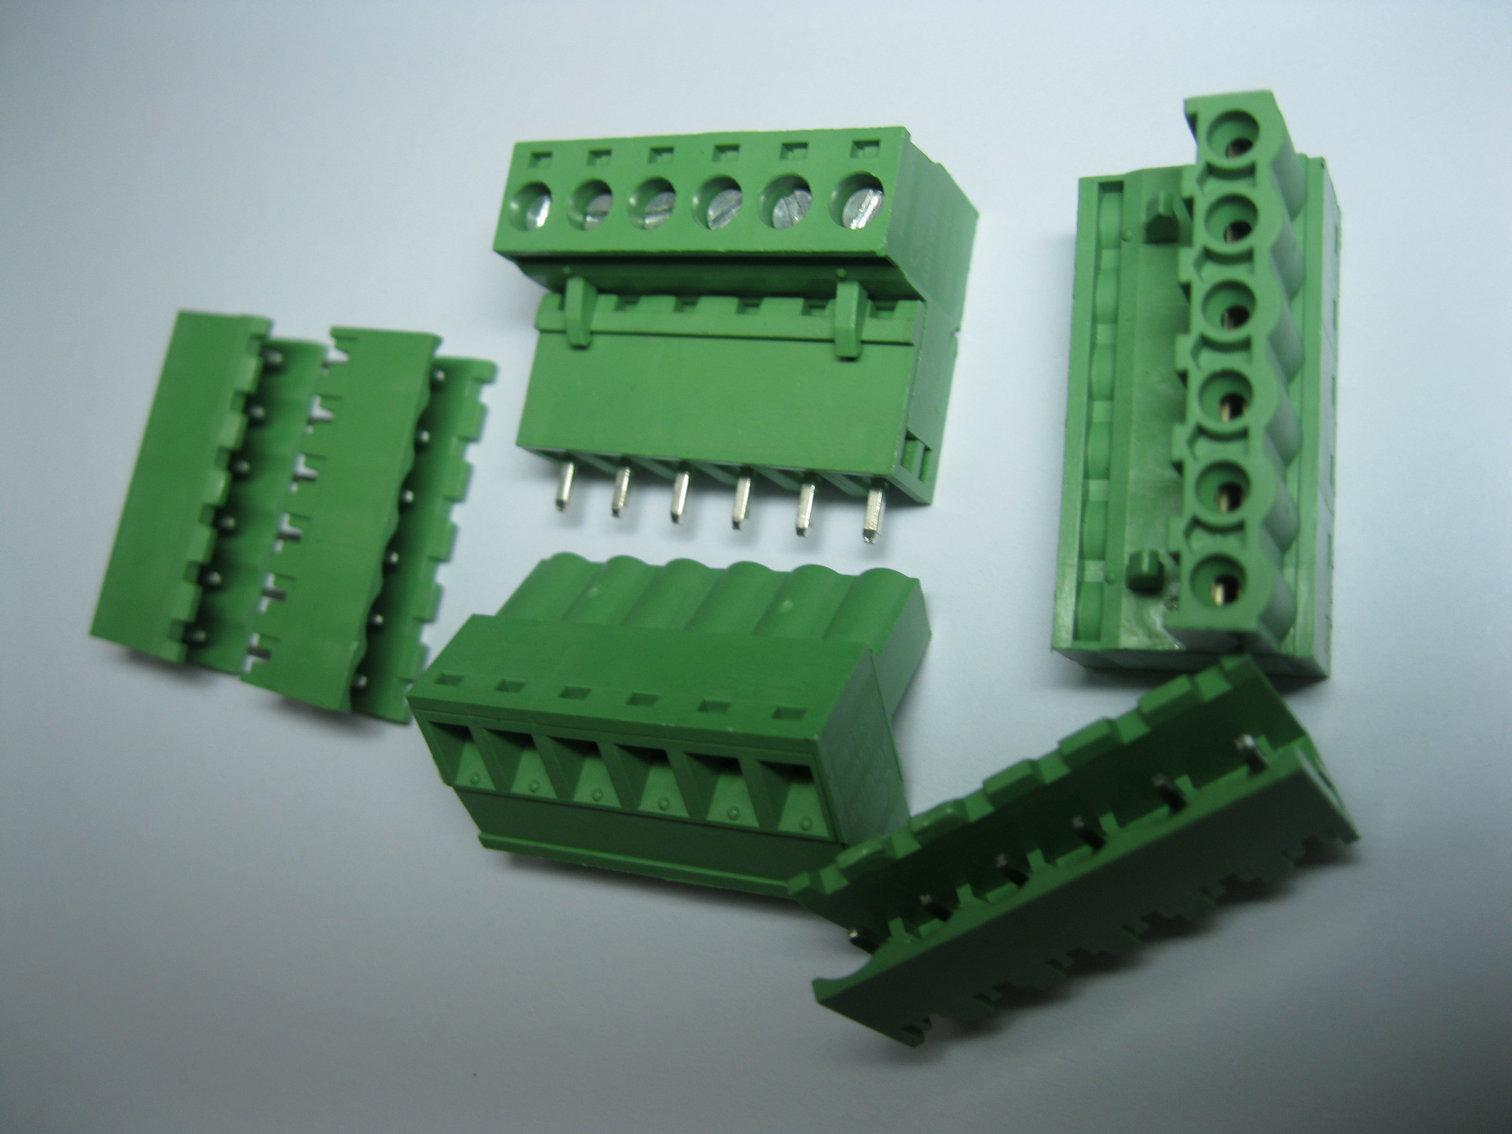 Screw Wiring Connectors Simple Electronic Circuits Automotive Connector Blocks Green 6 Pin 5 08mm Terminal Block Pluggable Type Hot Rh Dhgate Com 4 Wire